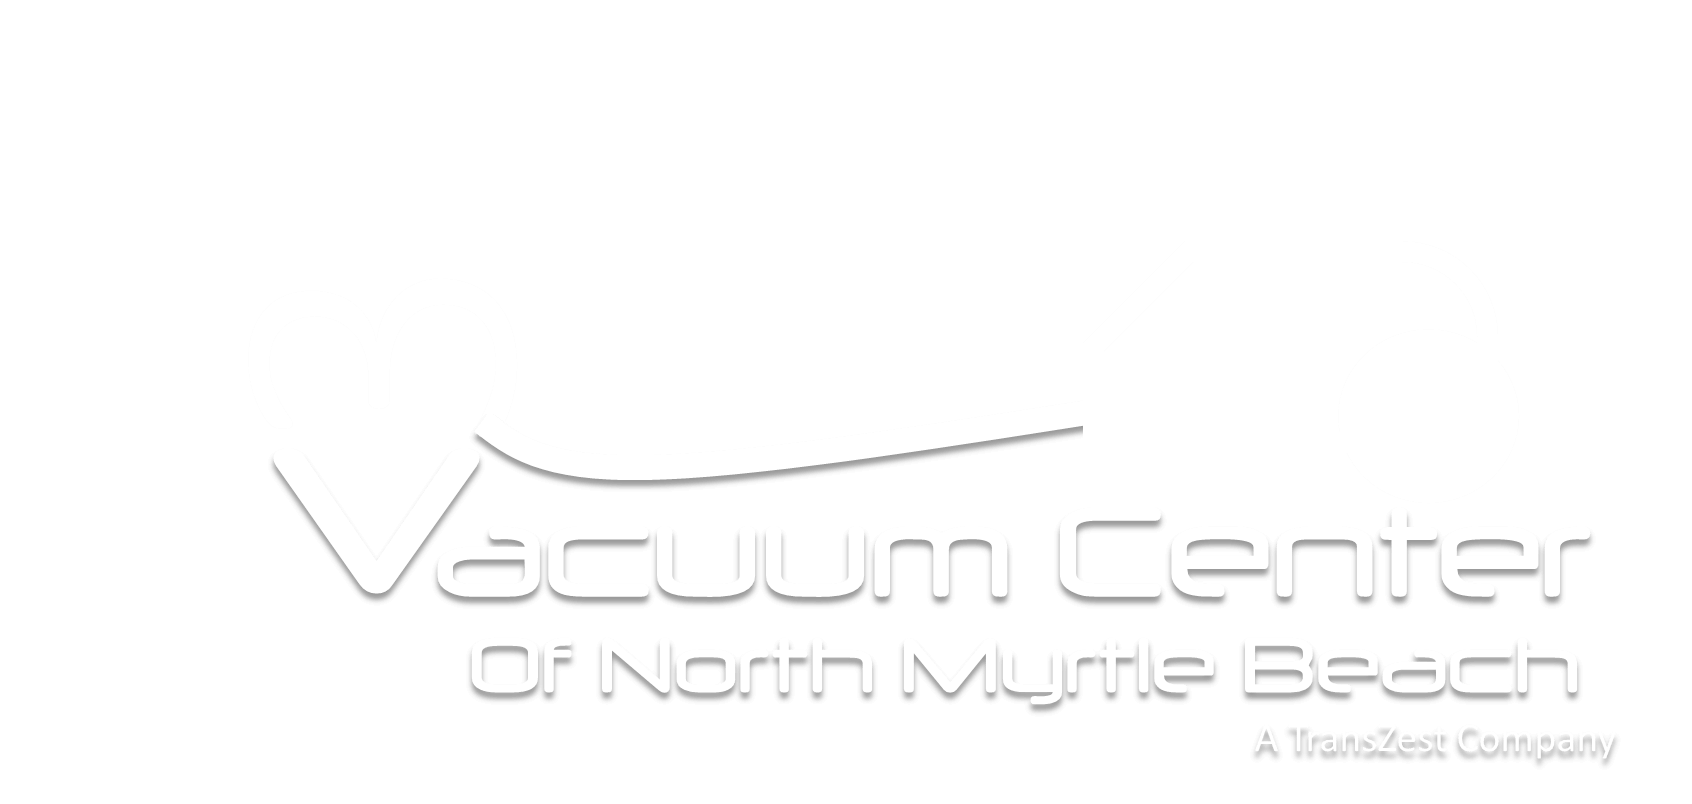 Vacuum Center of North Myrtle Beach